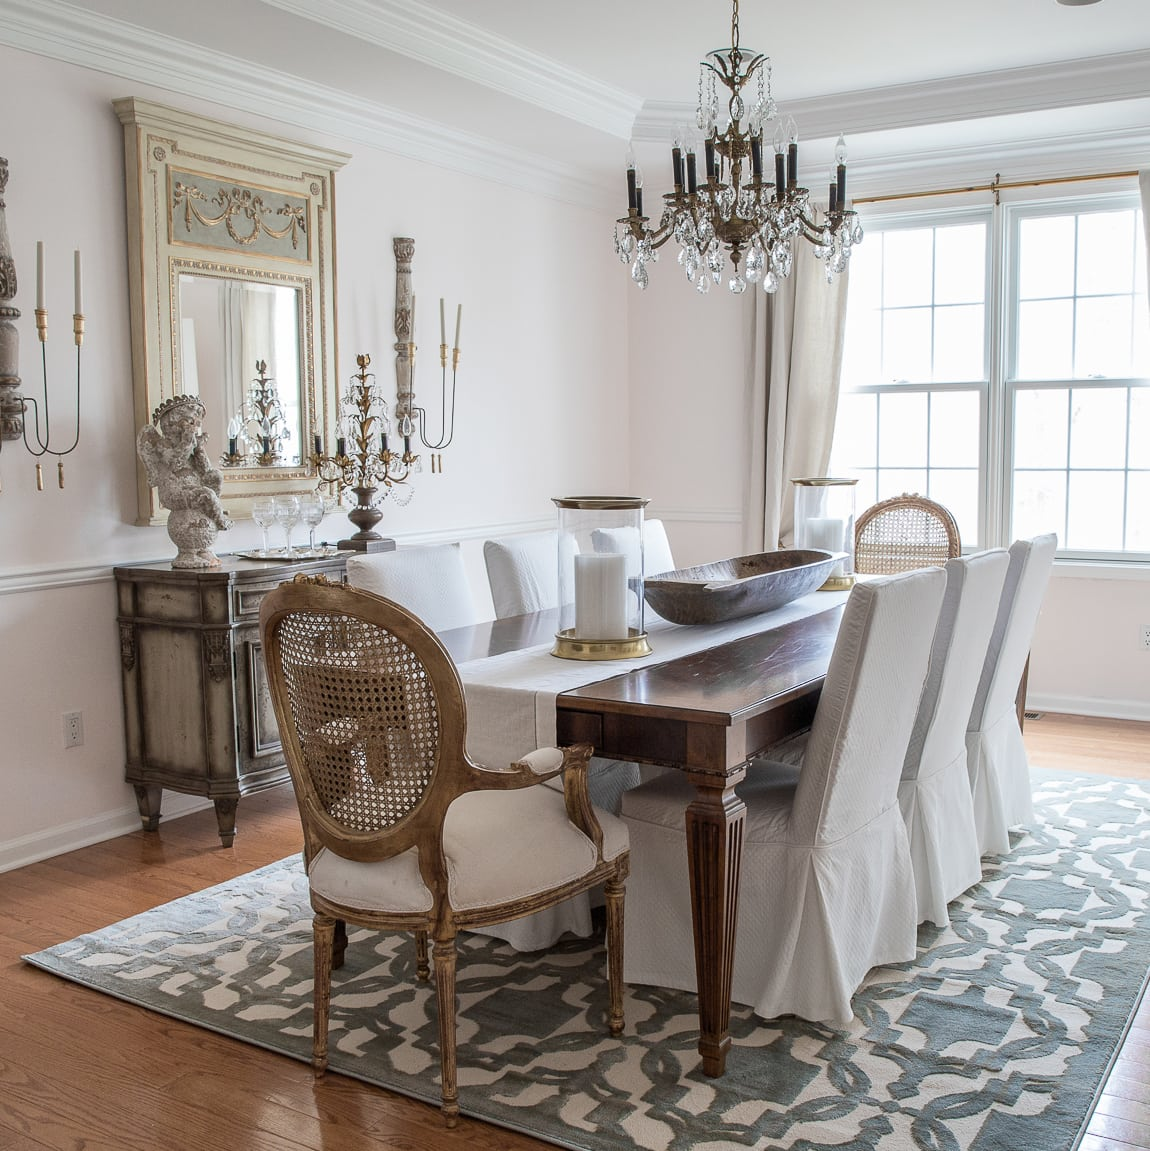 Transforming the dining room without replacing furniture